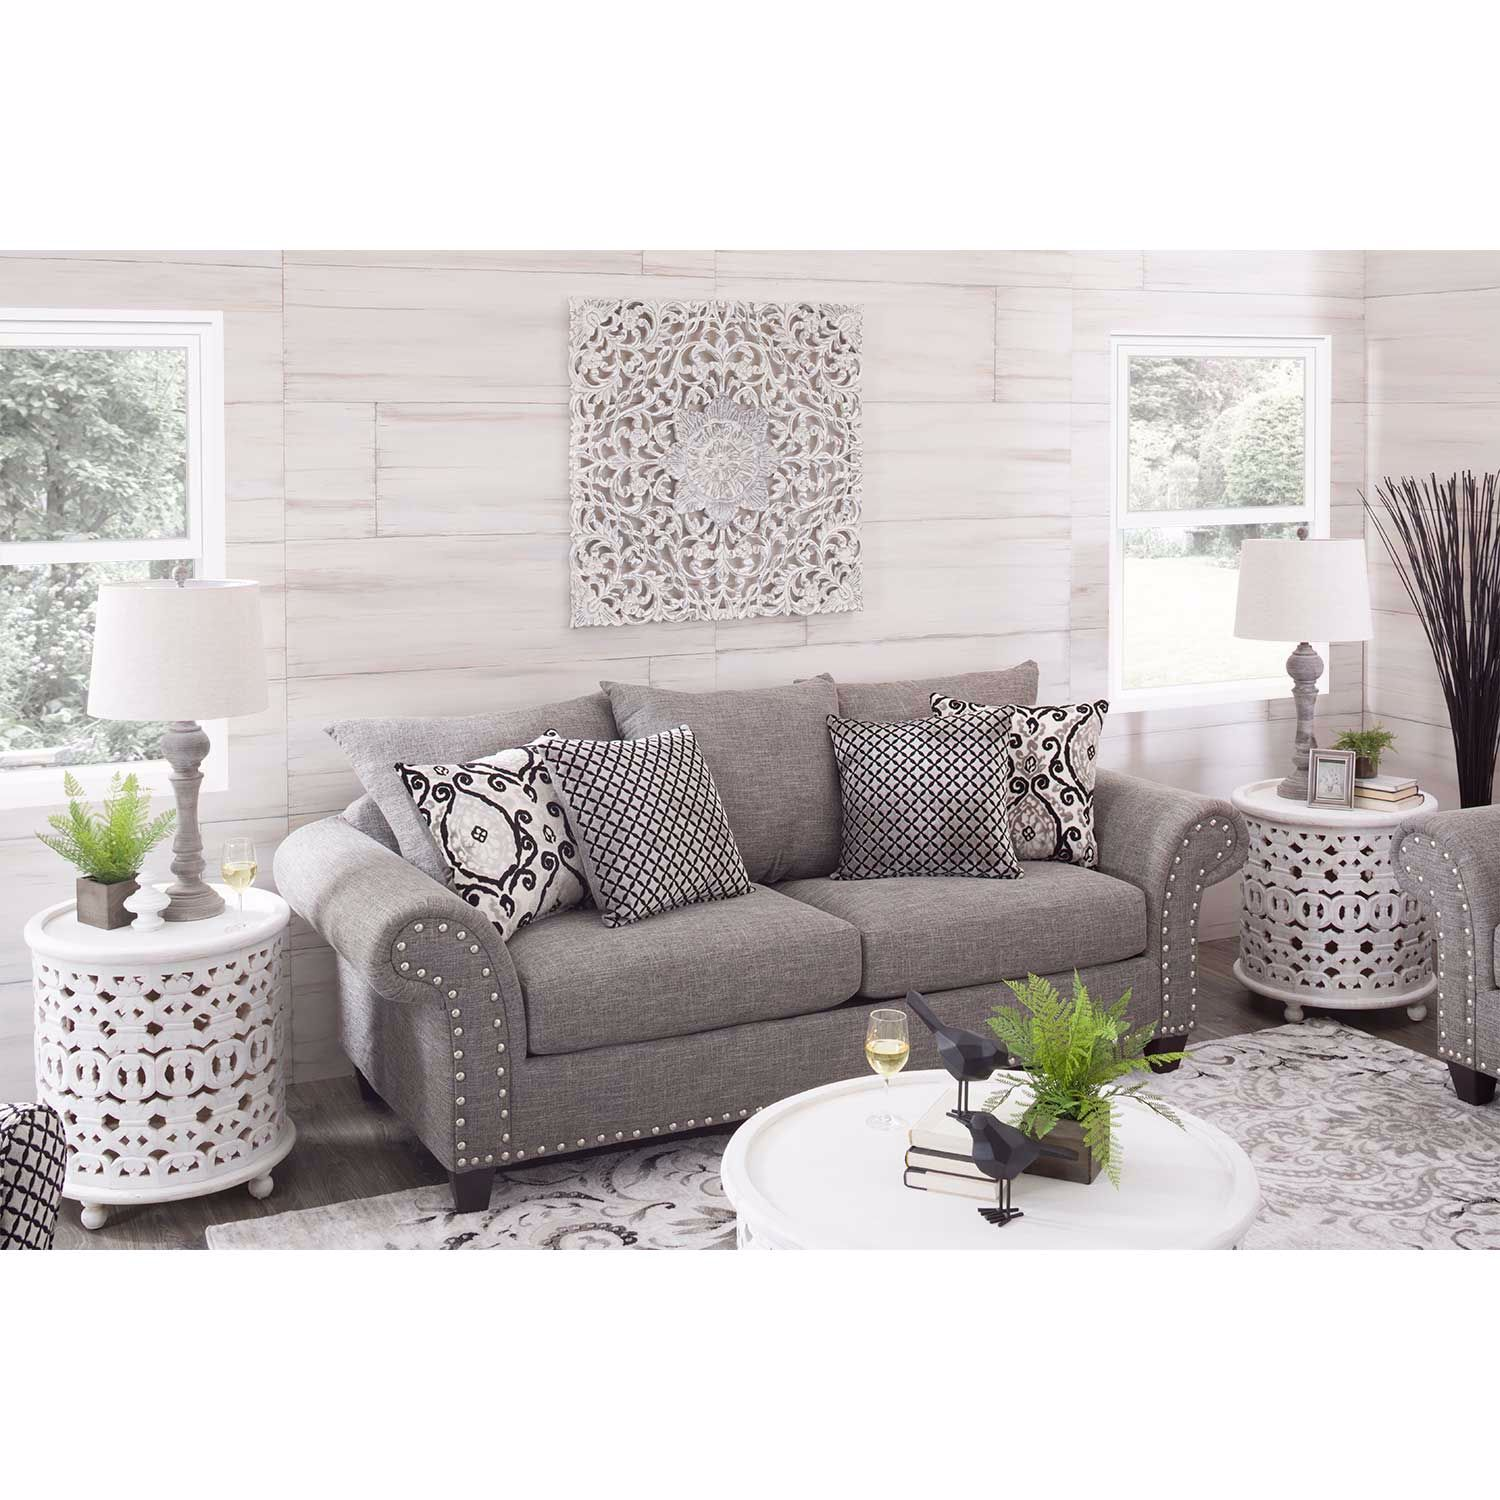 Picture of Odette Onyx Sofa